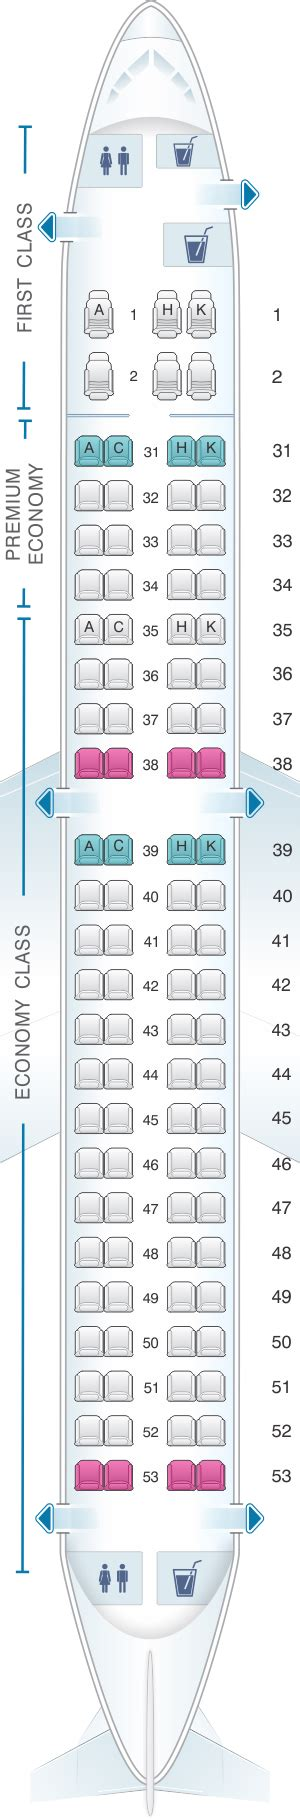 Plan de cabine China Southern Airlines Embraer RJ190